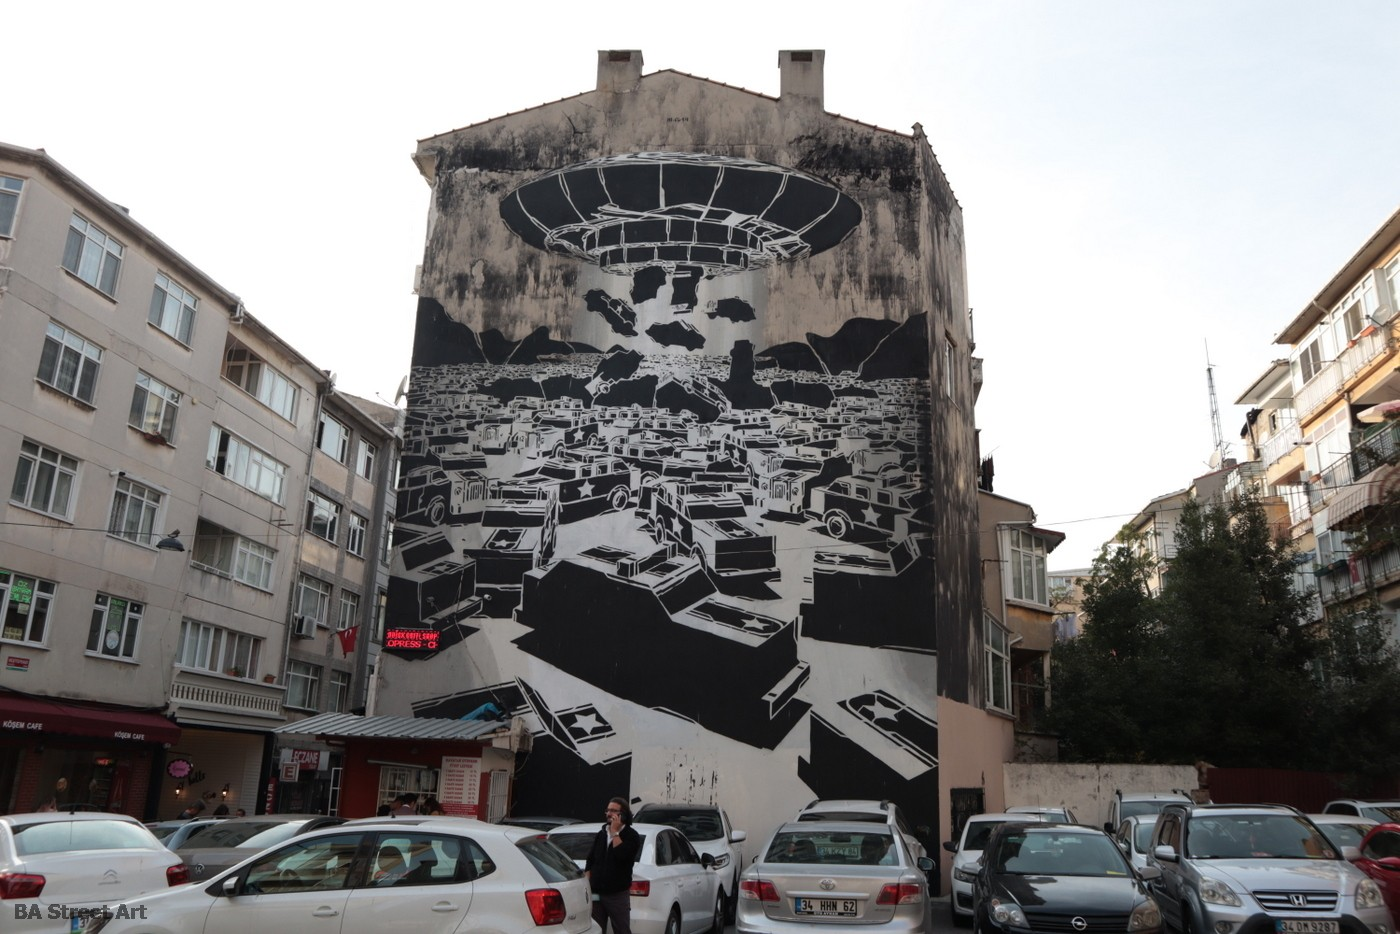 m city street artist poland mural istanbul karakoy ufo cars space invader